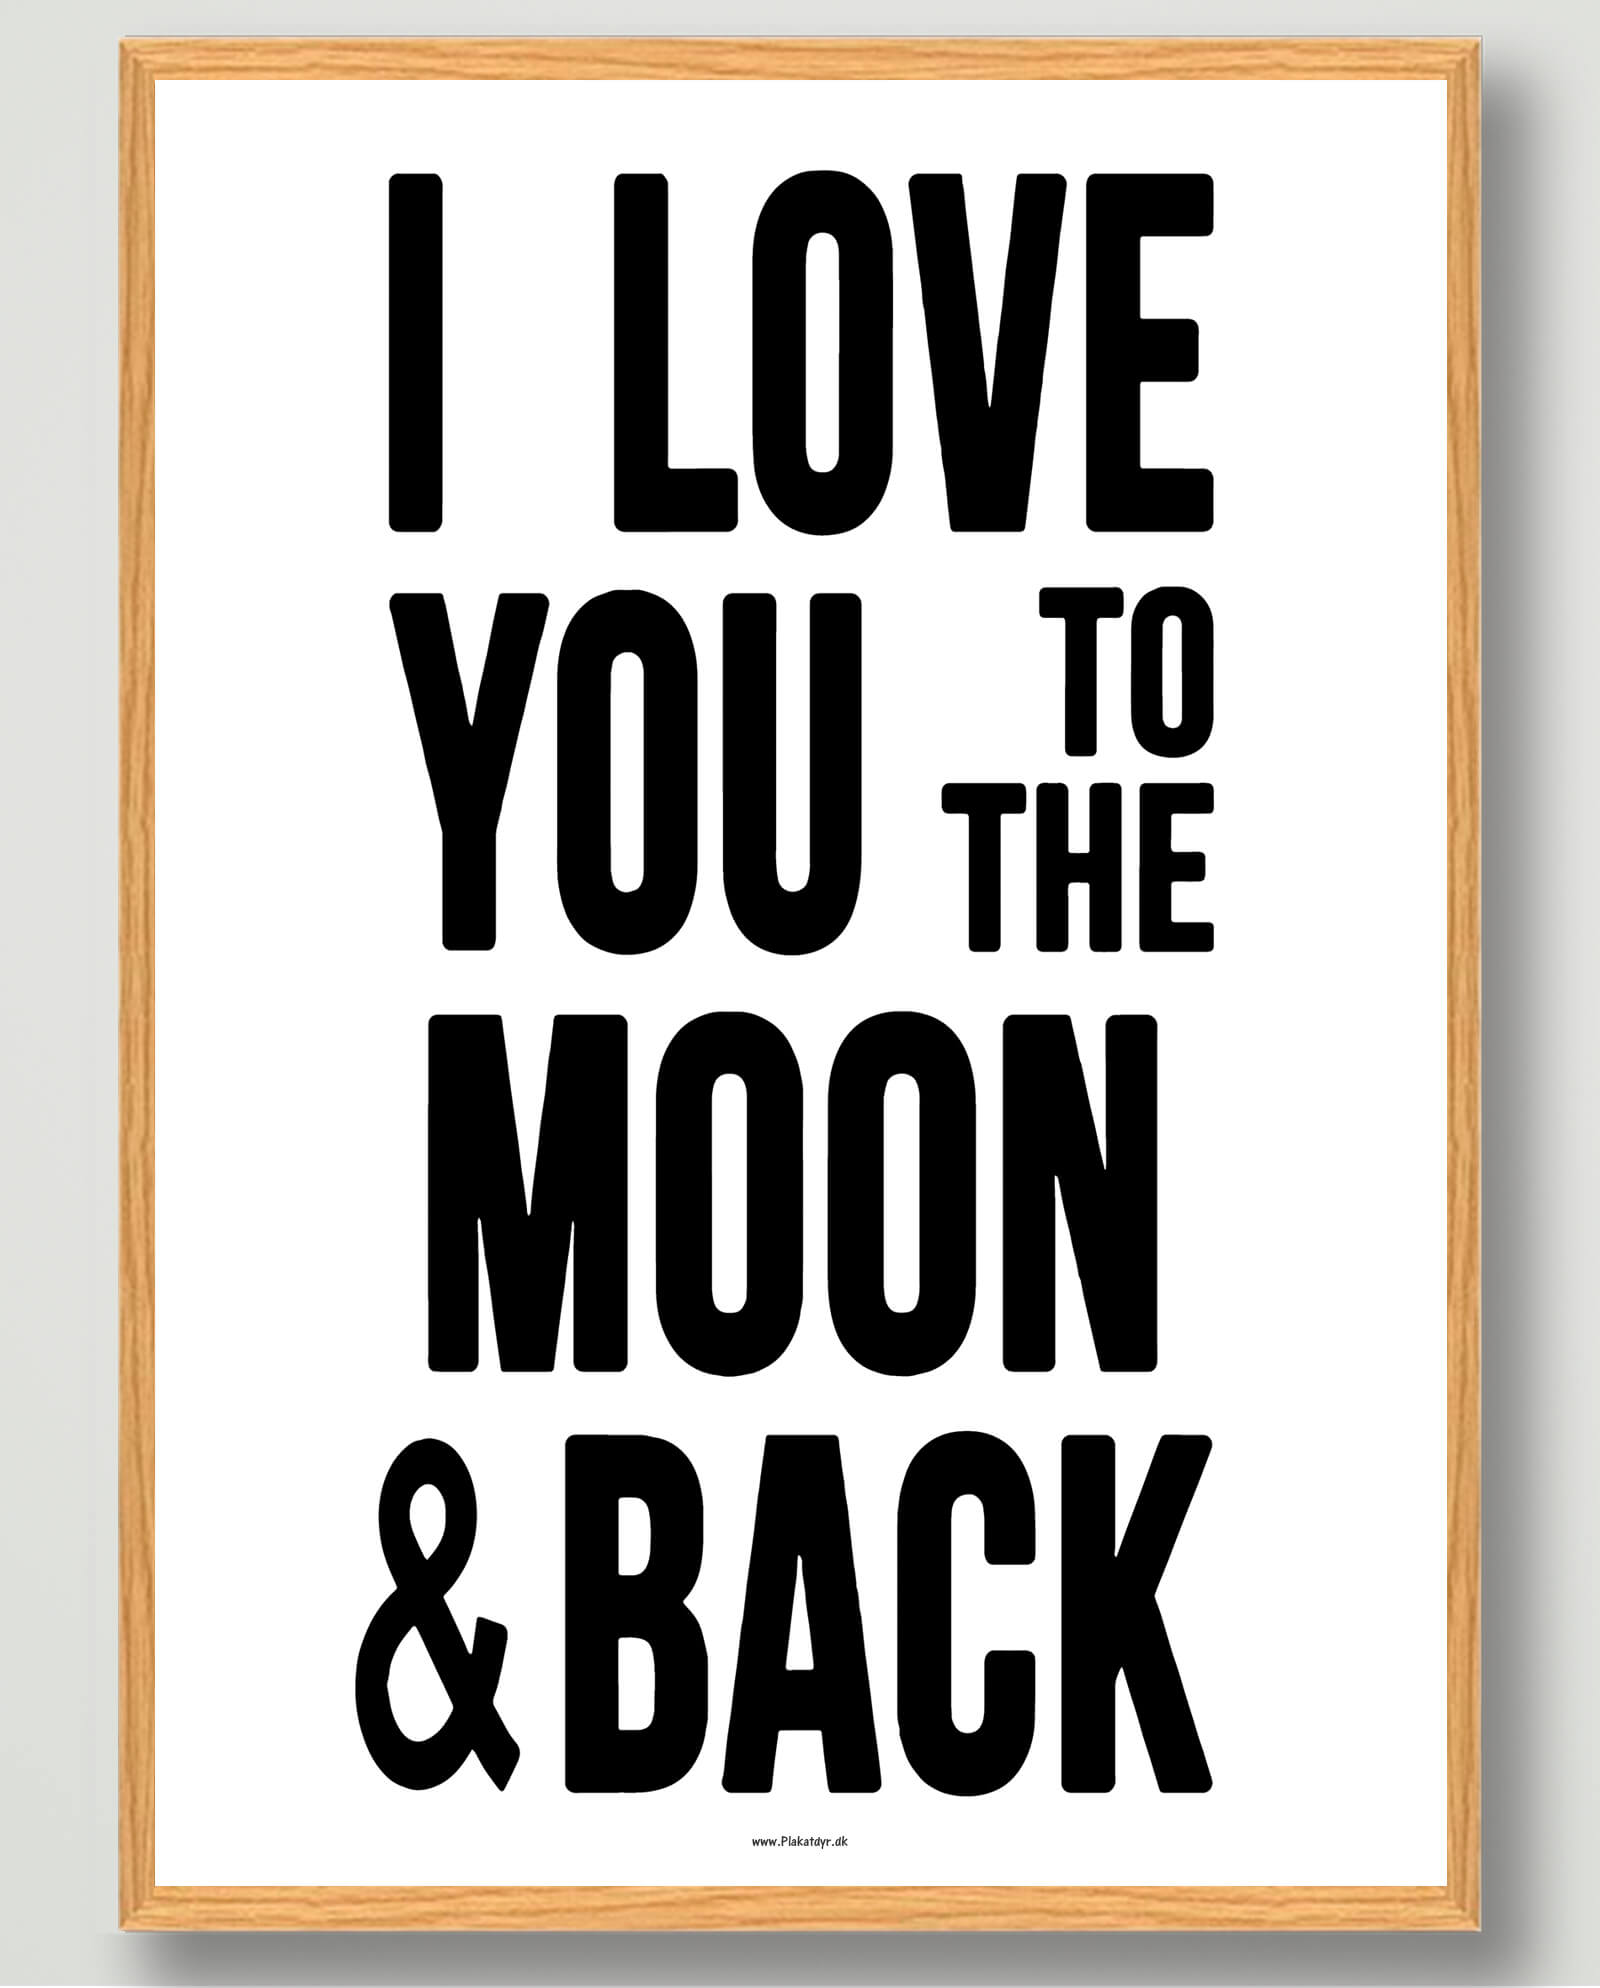 I love you to the moon... - plakat